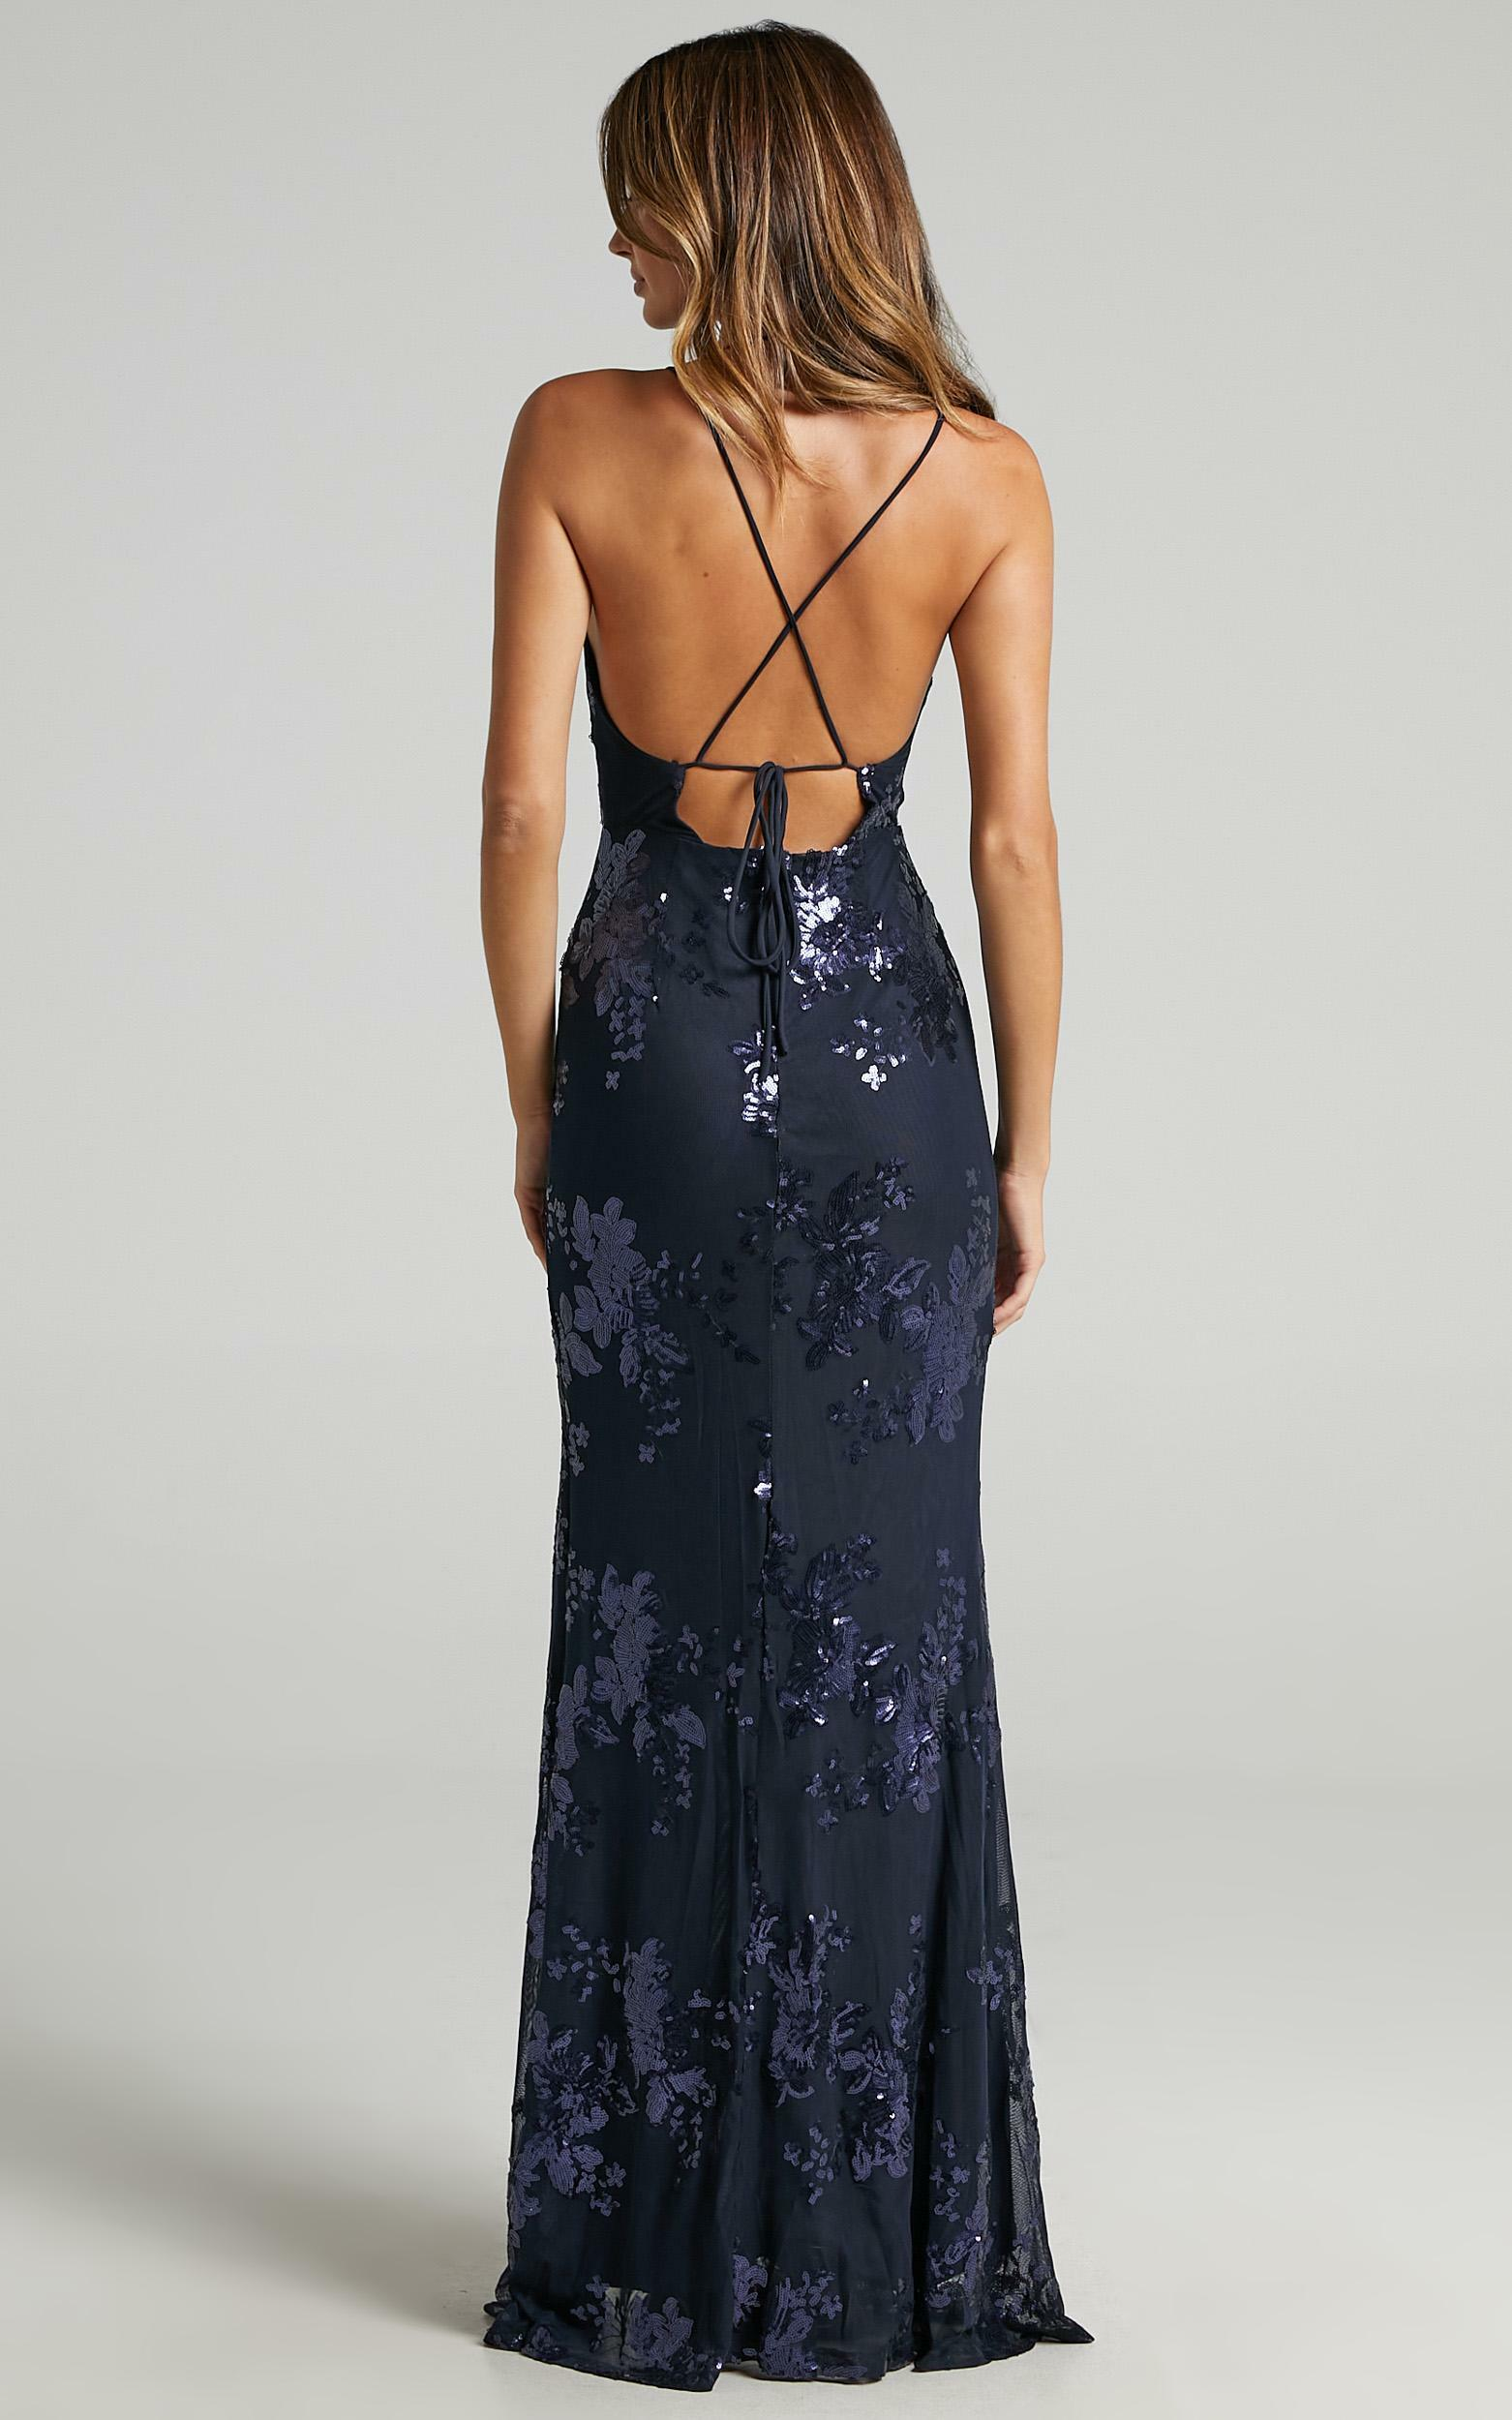 Out Till Dawn Maxi Dress in Navy Sequin - 04, NVY3, hi-res image number null